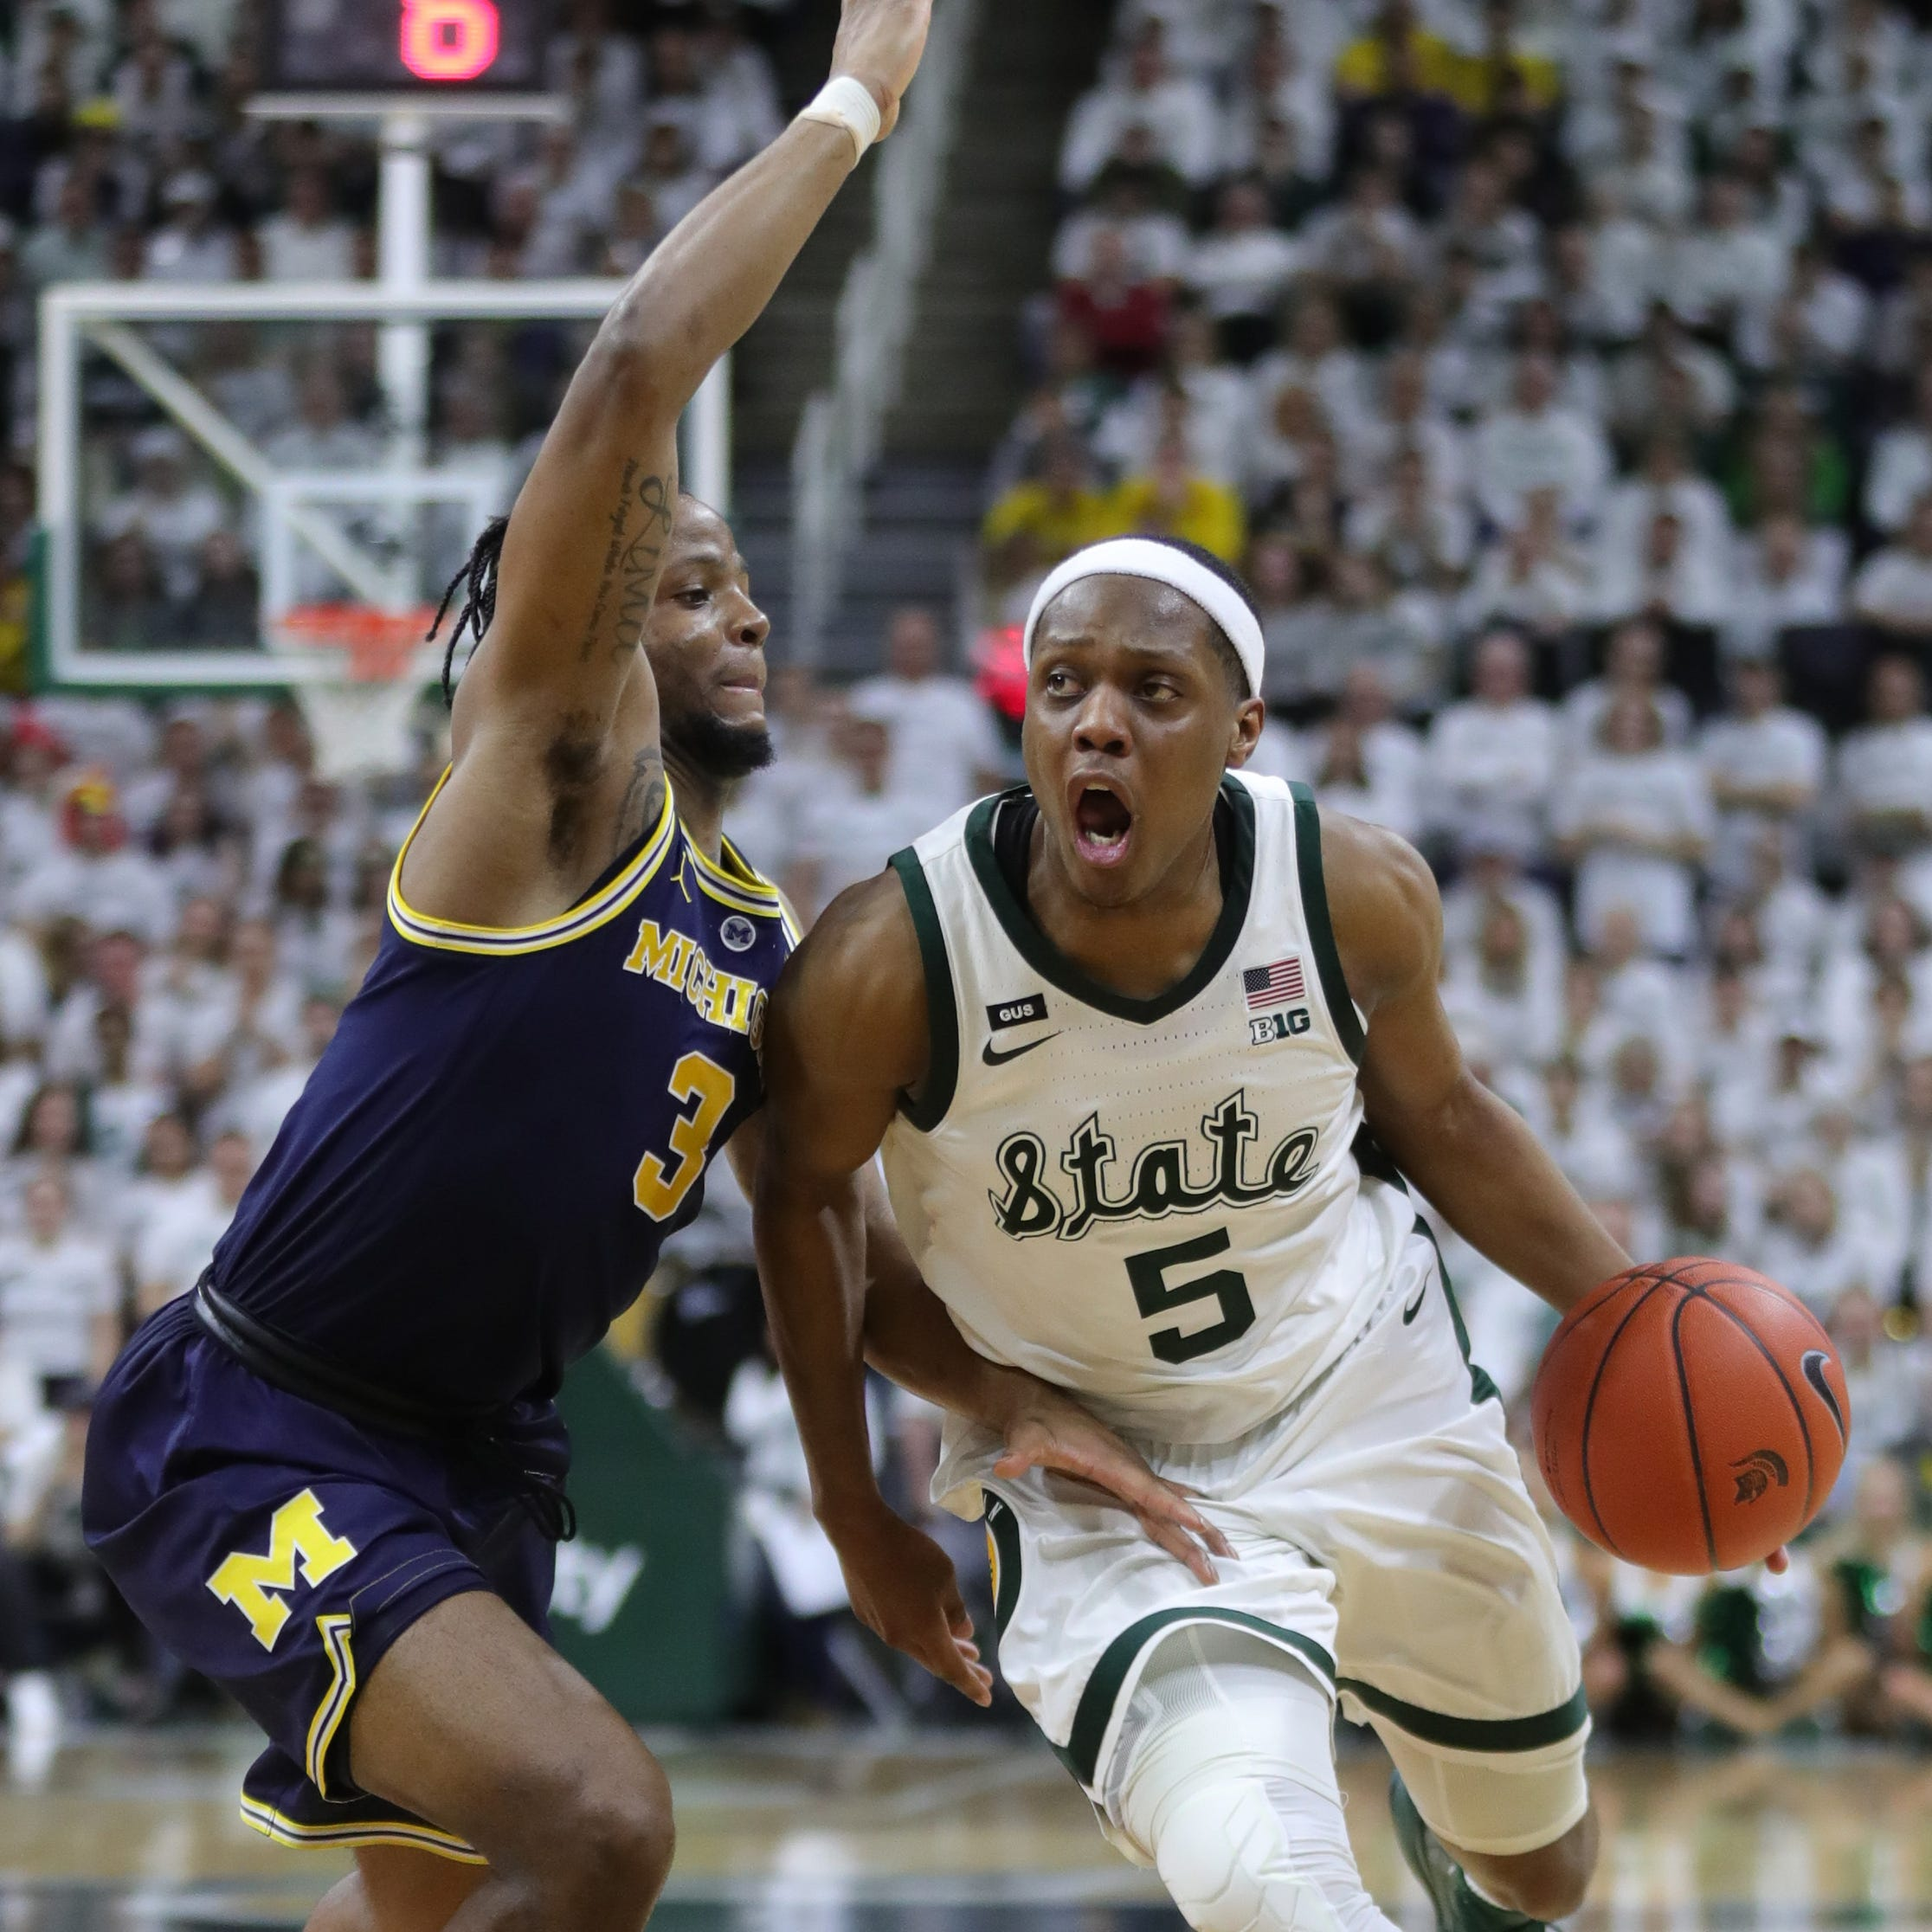 Michigan State and Michigan basketball both set up to make deep 2020 run